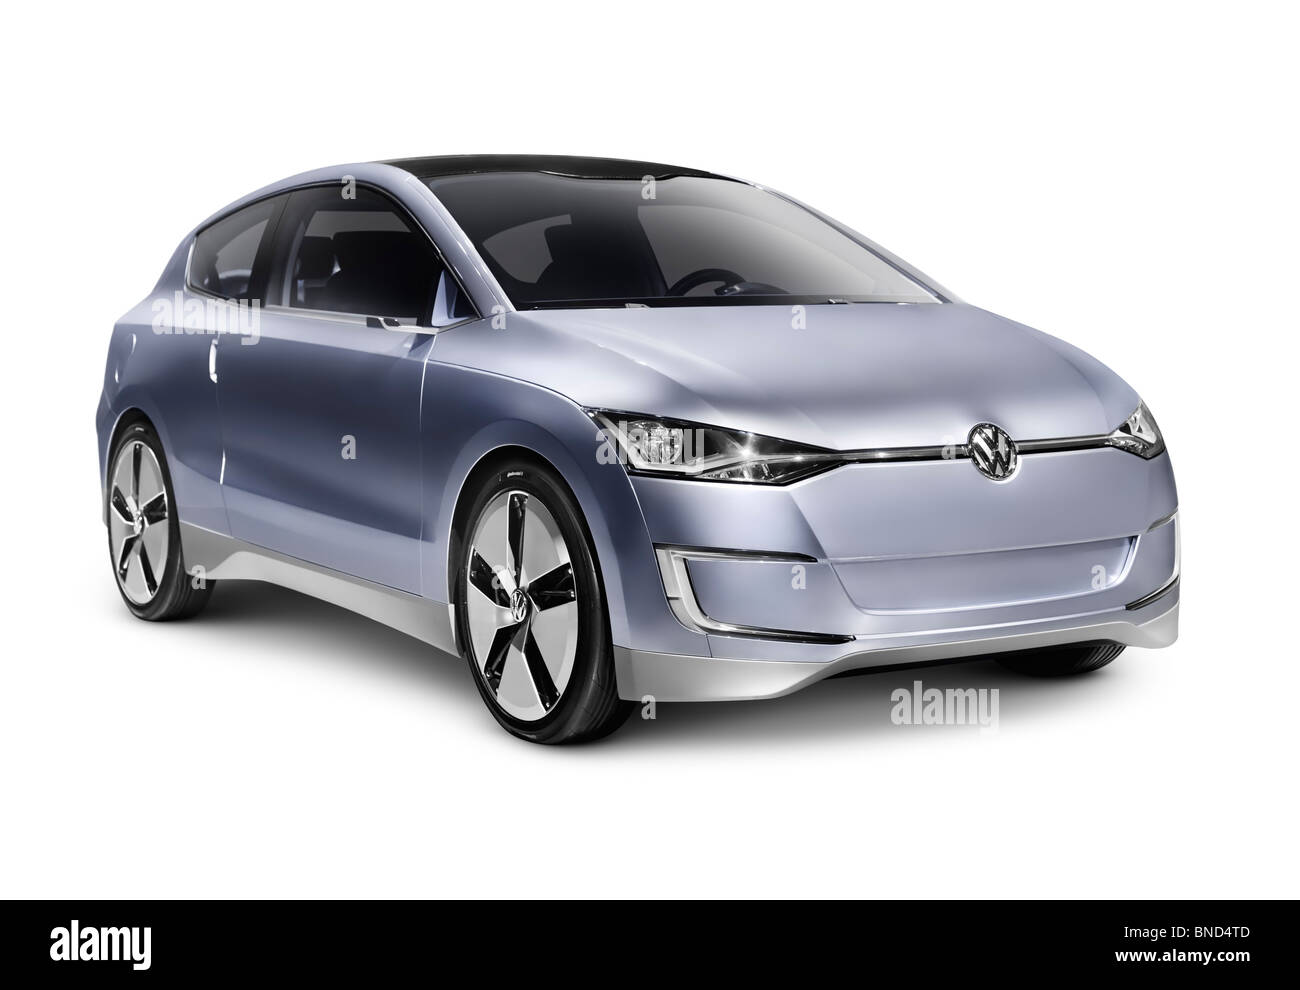 2010 Volkswagen Up! Lite Concept hybrid diesel fuel efficient city car. Isolated with clipping path on white background. - Stock Image